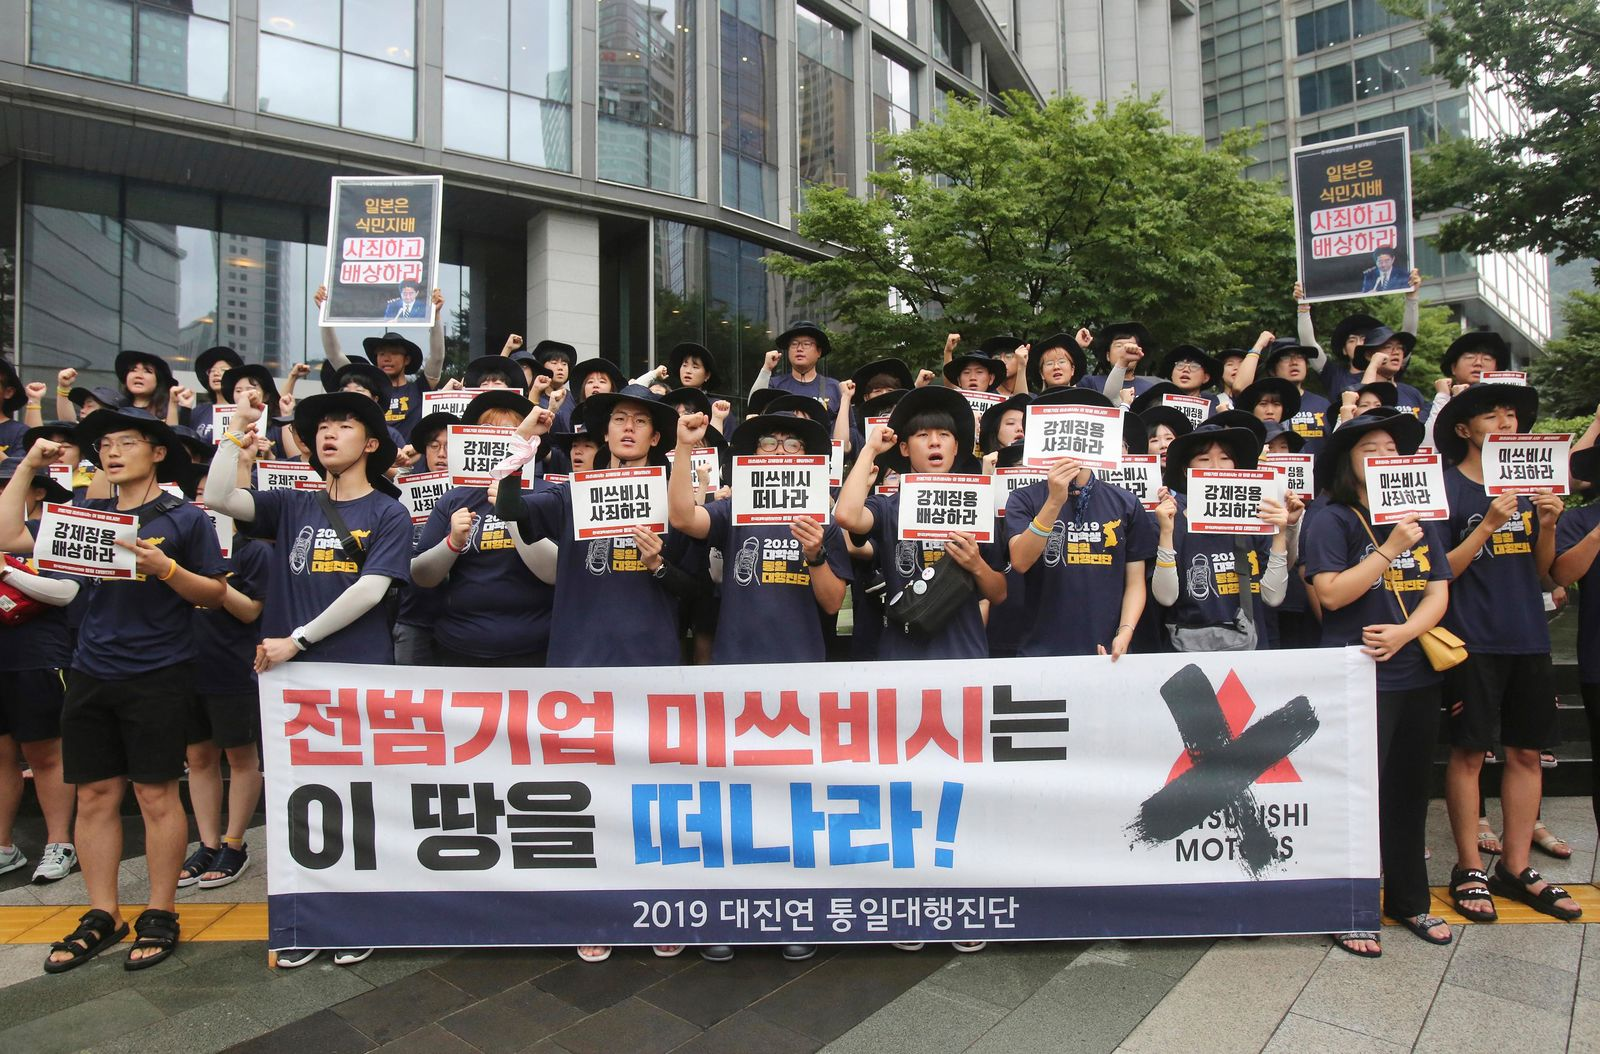 South Korean college students shout slogans during a rally to denounce Japan's new trade restrictions on South Korea in front of the office of Mitsubishi Corp. in Seoul, South Korea, Wednesday, Aug. 7, 2019. (AP Photo/Ahn Young-joon)